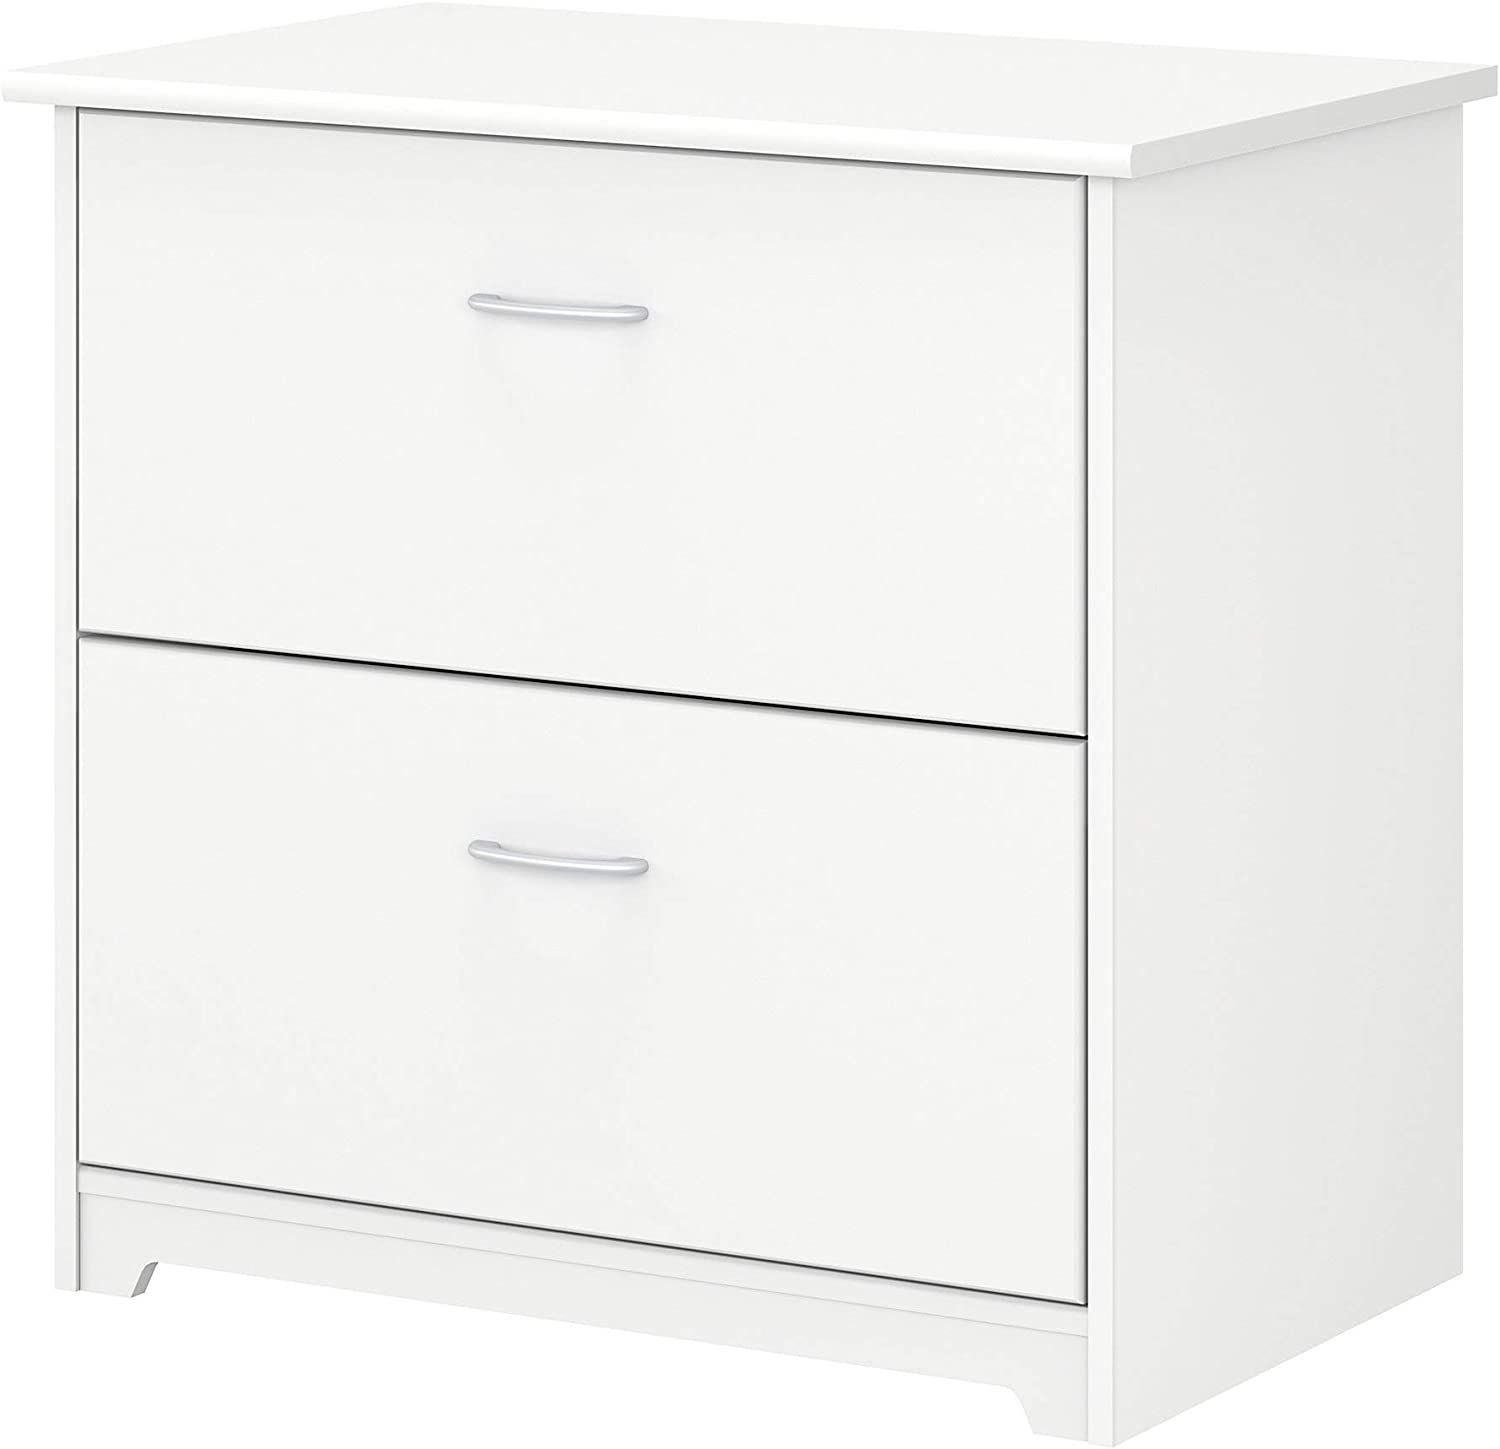 Bush Furniture Cabot 2 Drawer Lateral File Cabinet, White